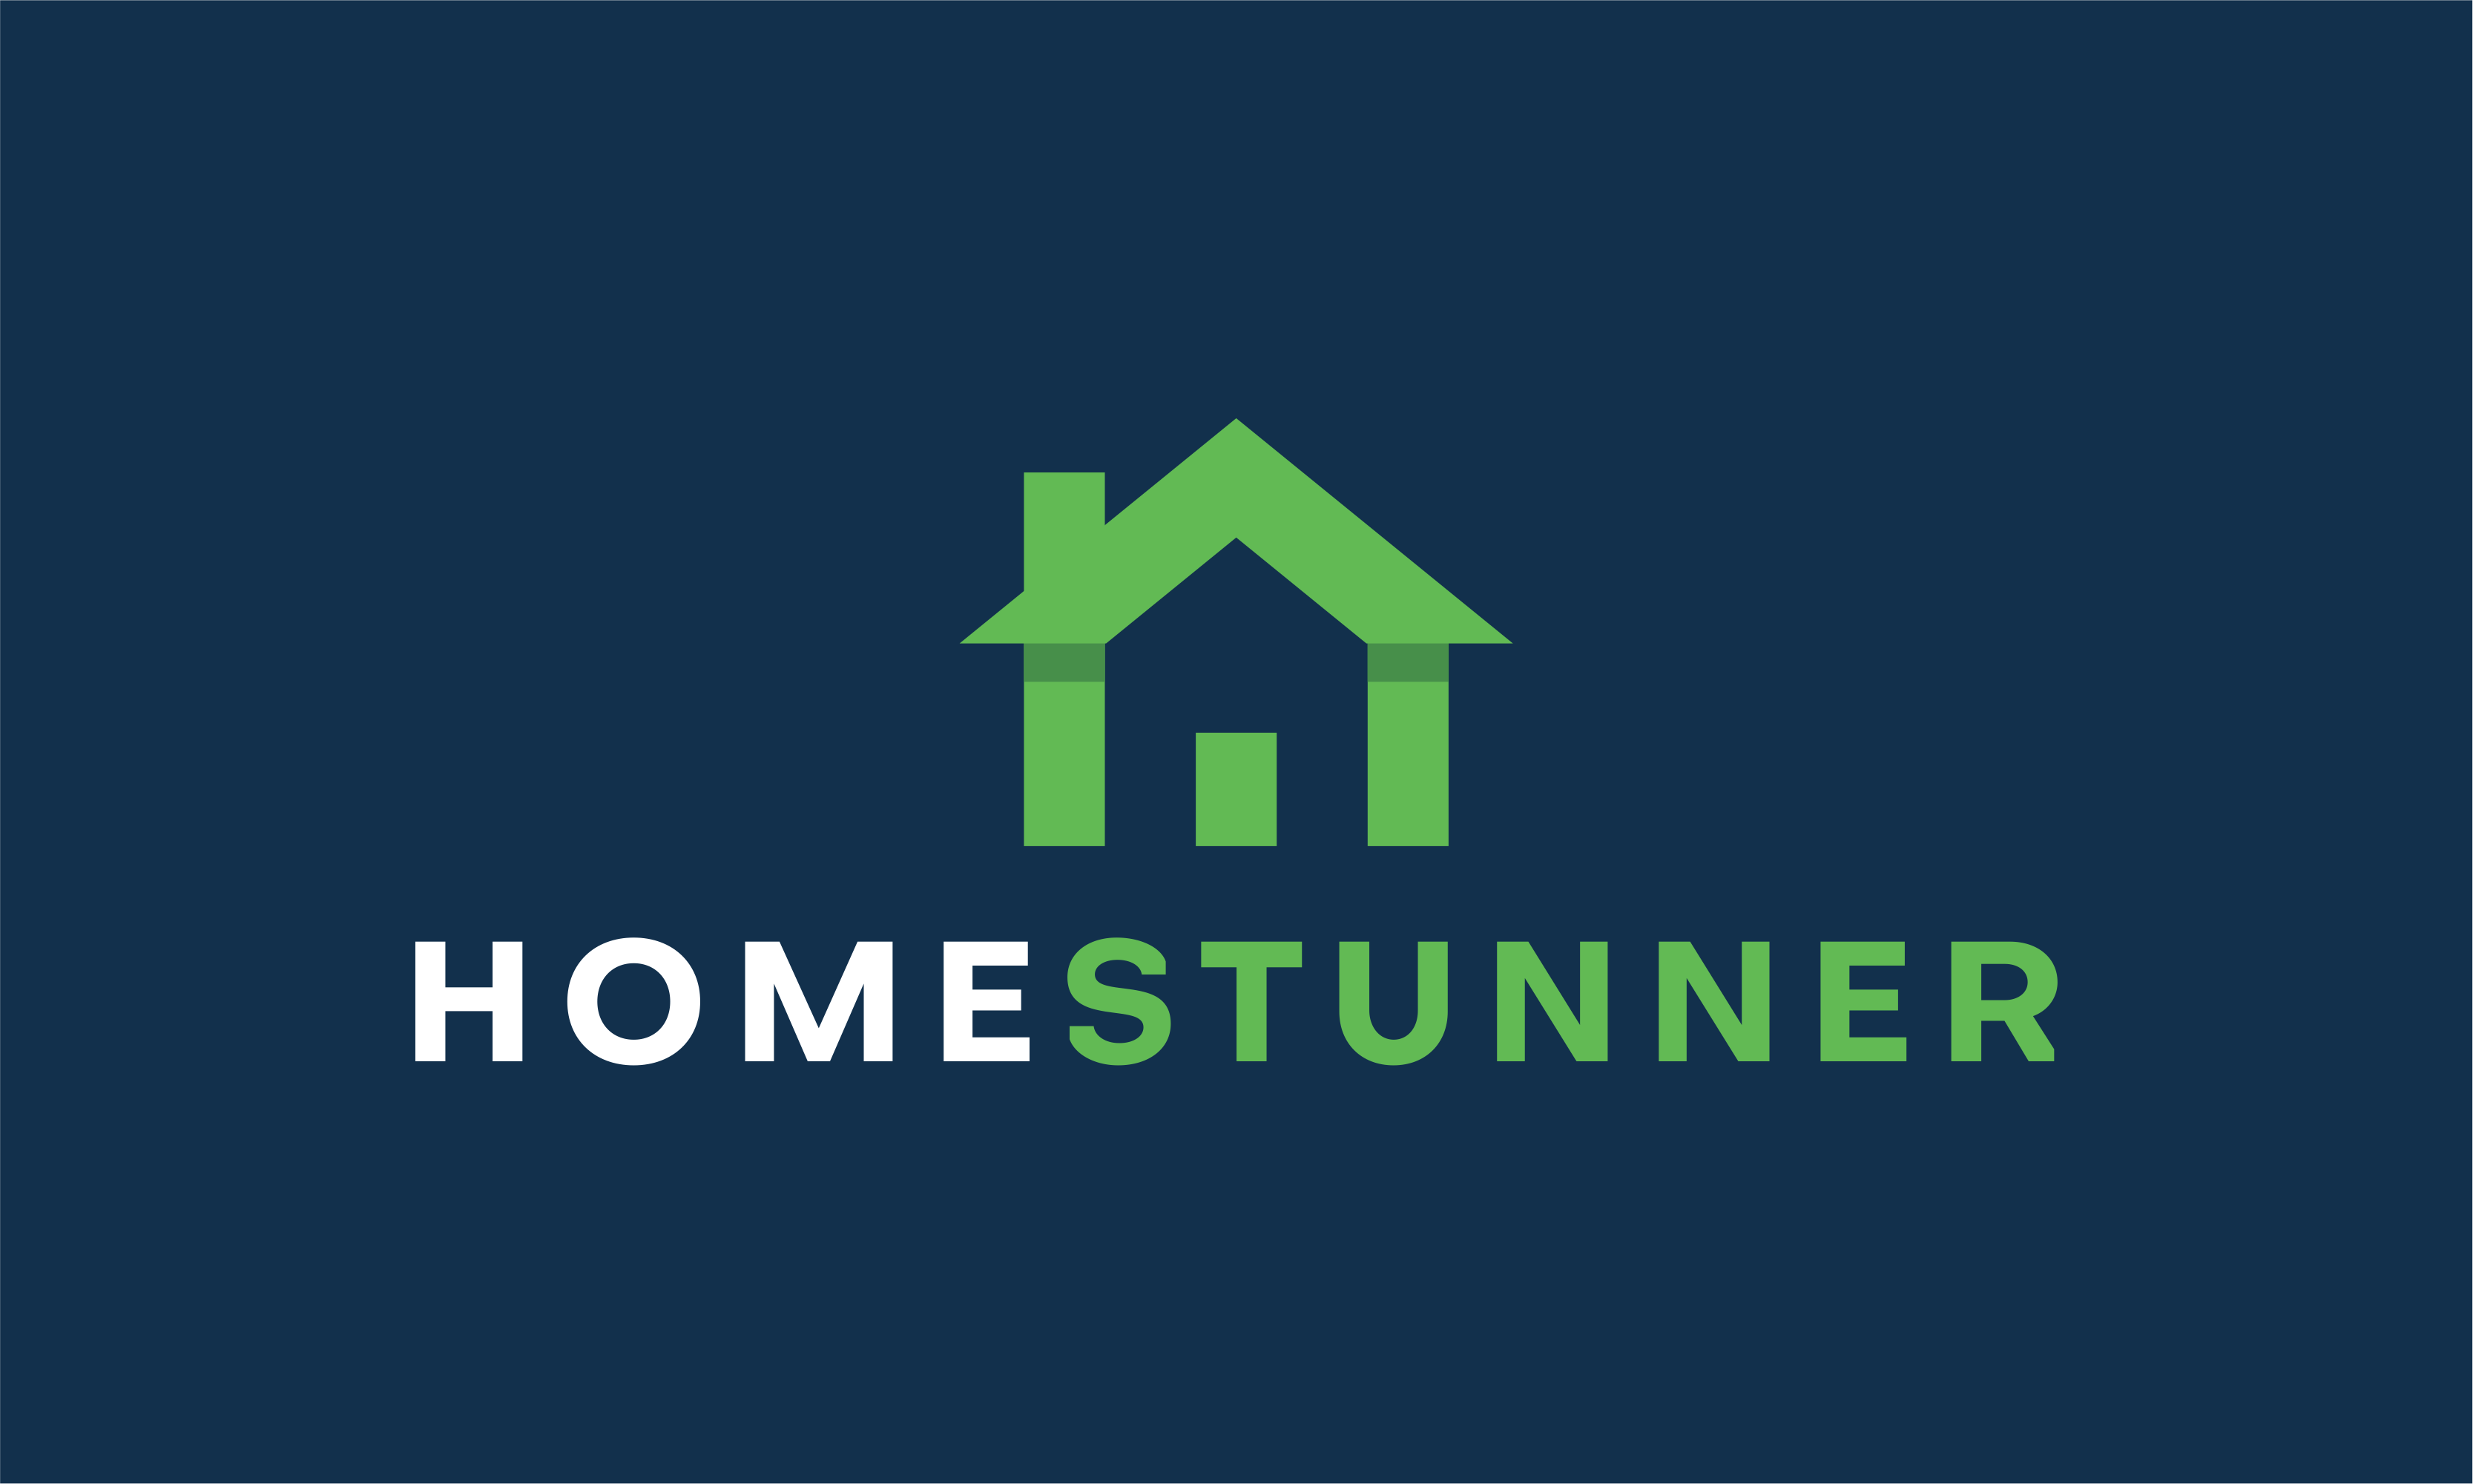 Homestunner - Smart home company name for sale